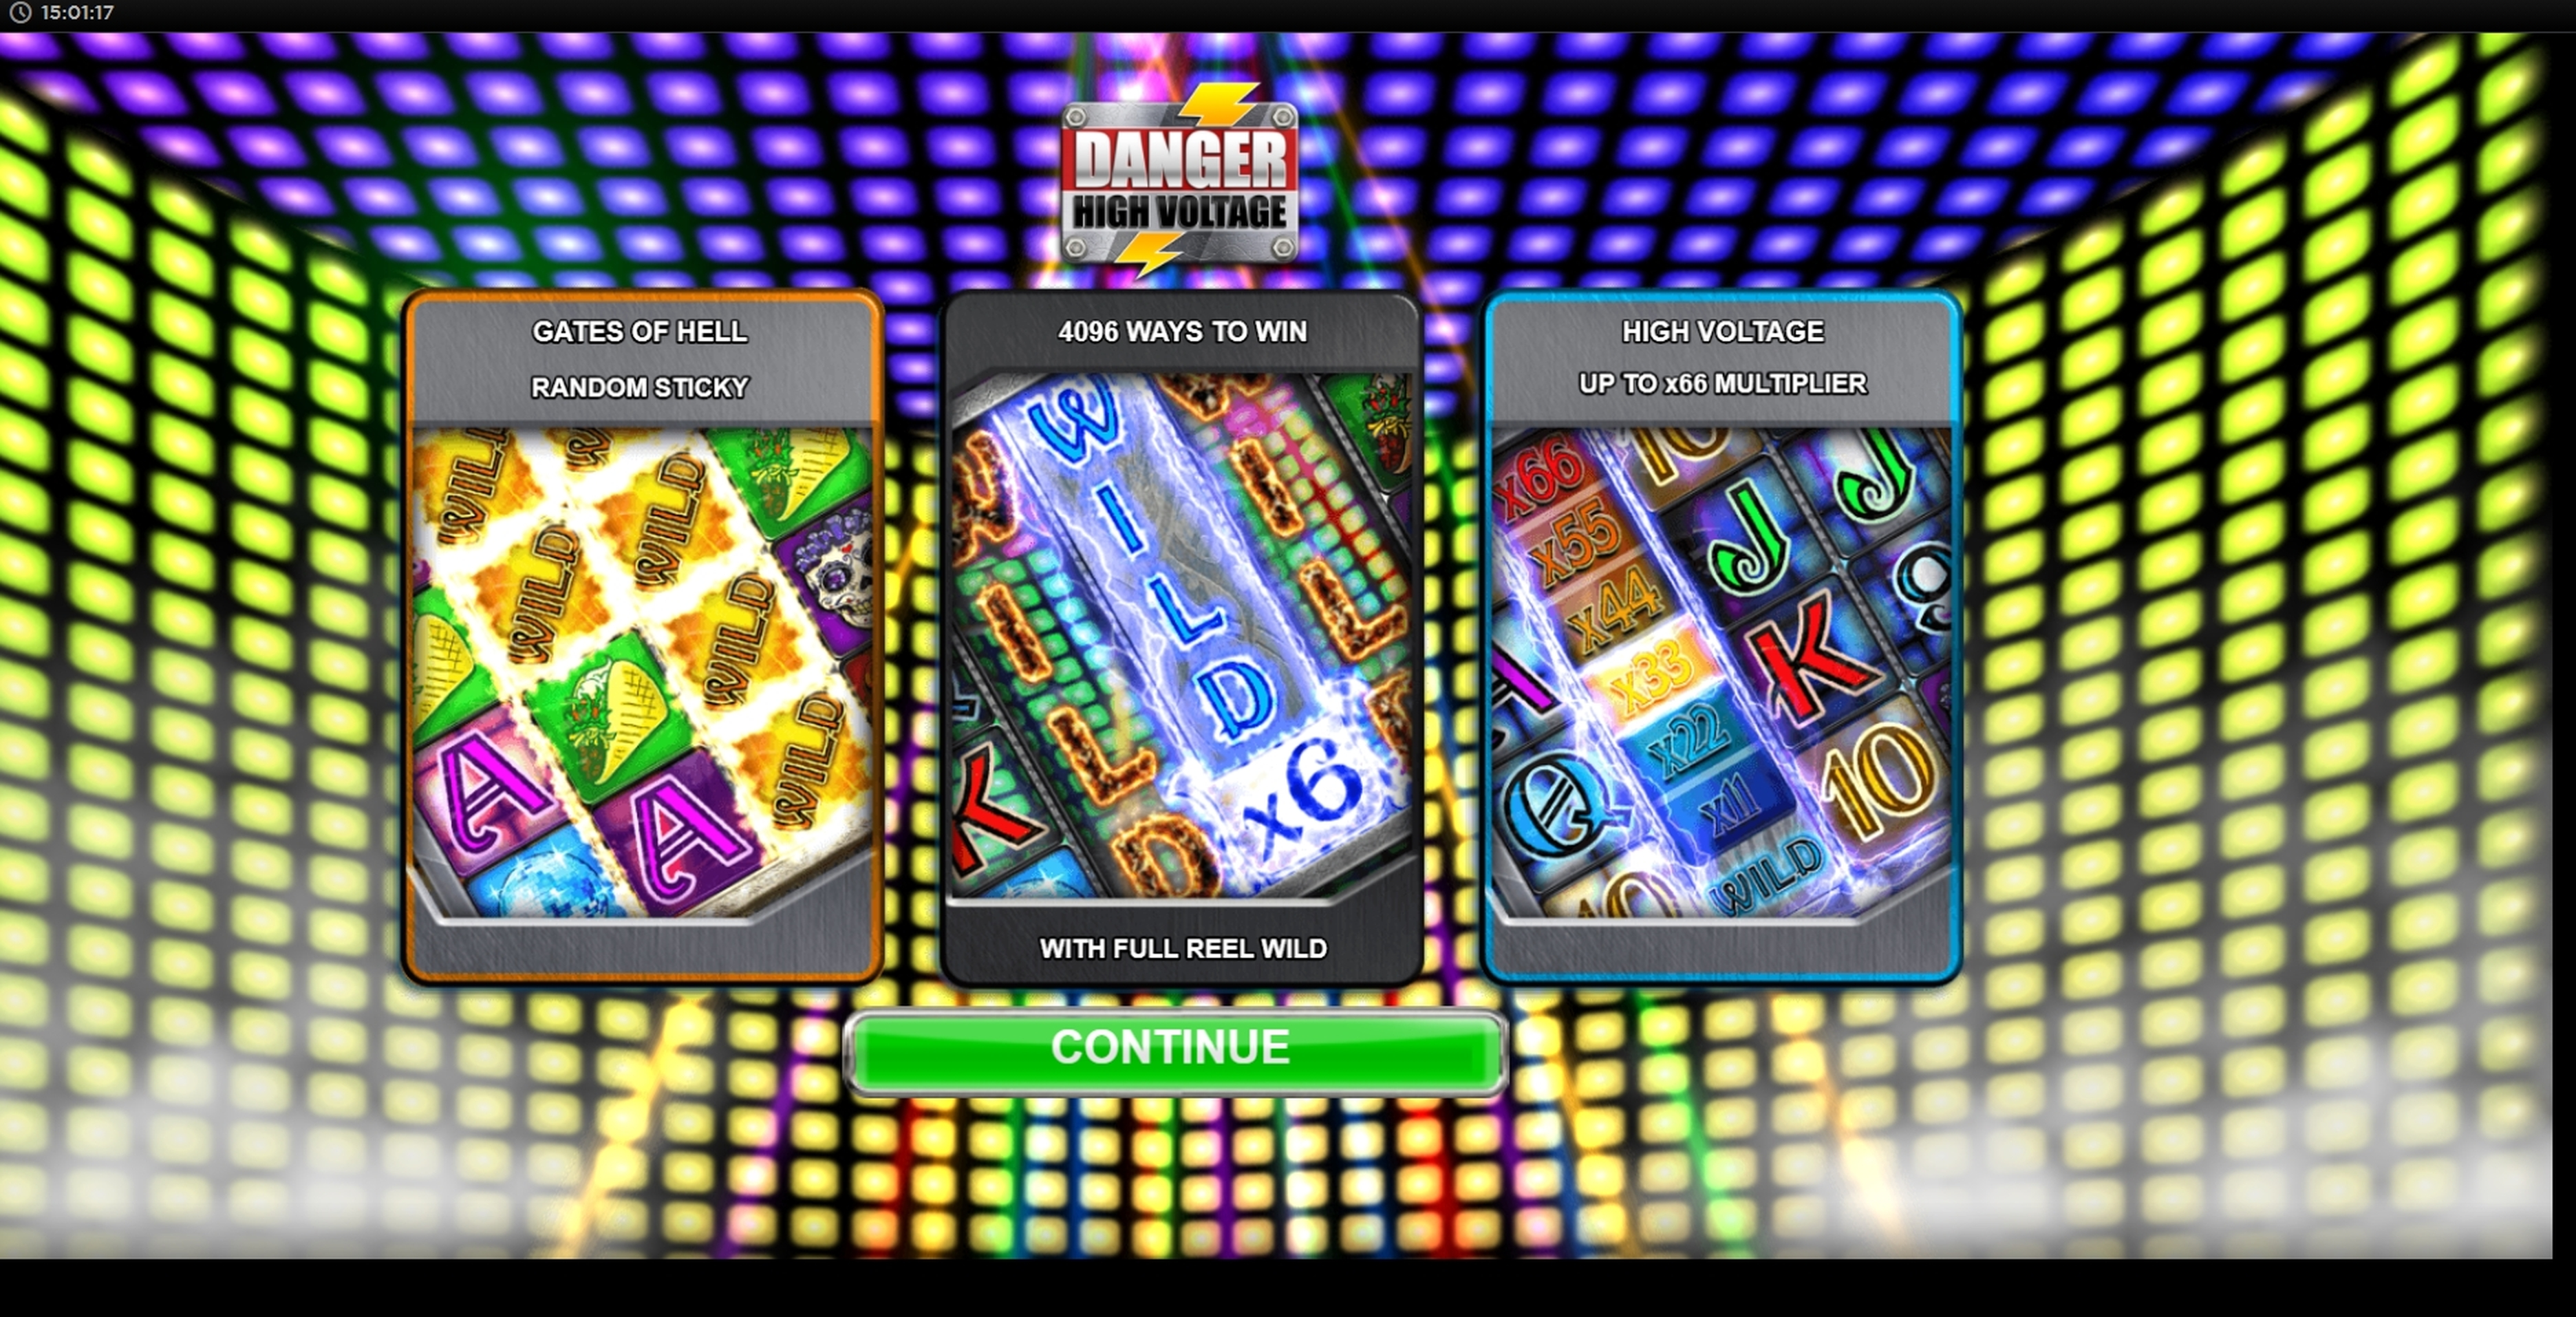 Play Danger High Voltage Free Casino Slot Game by Big Time Gaming